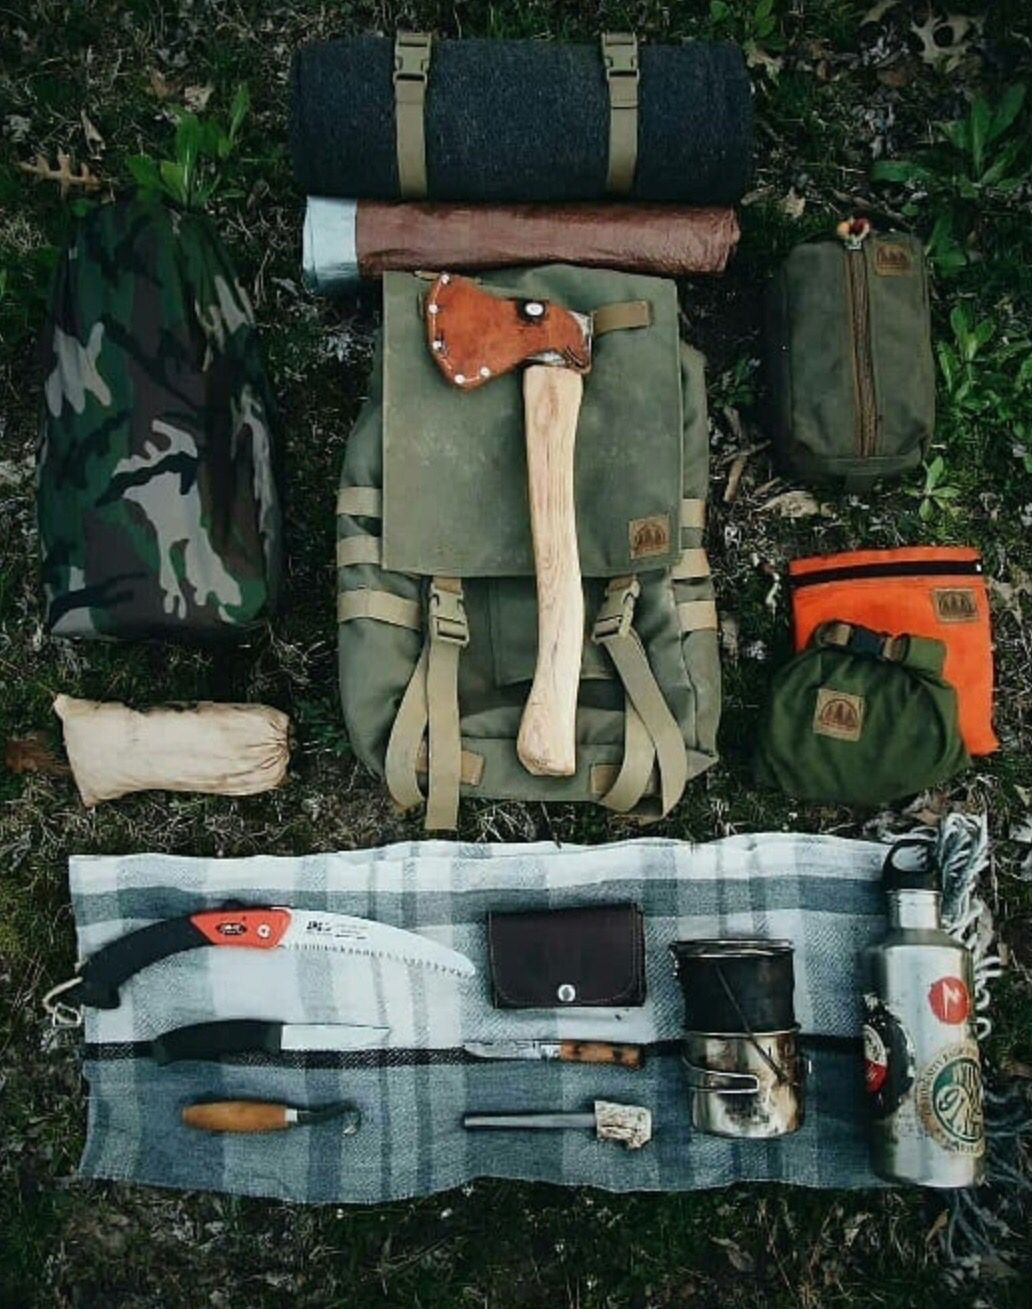 Full bushcraft loadout and packing list Survival gear